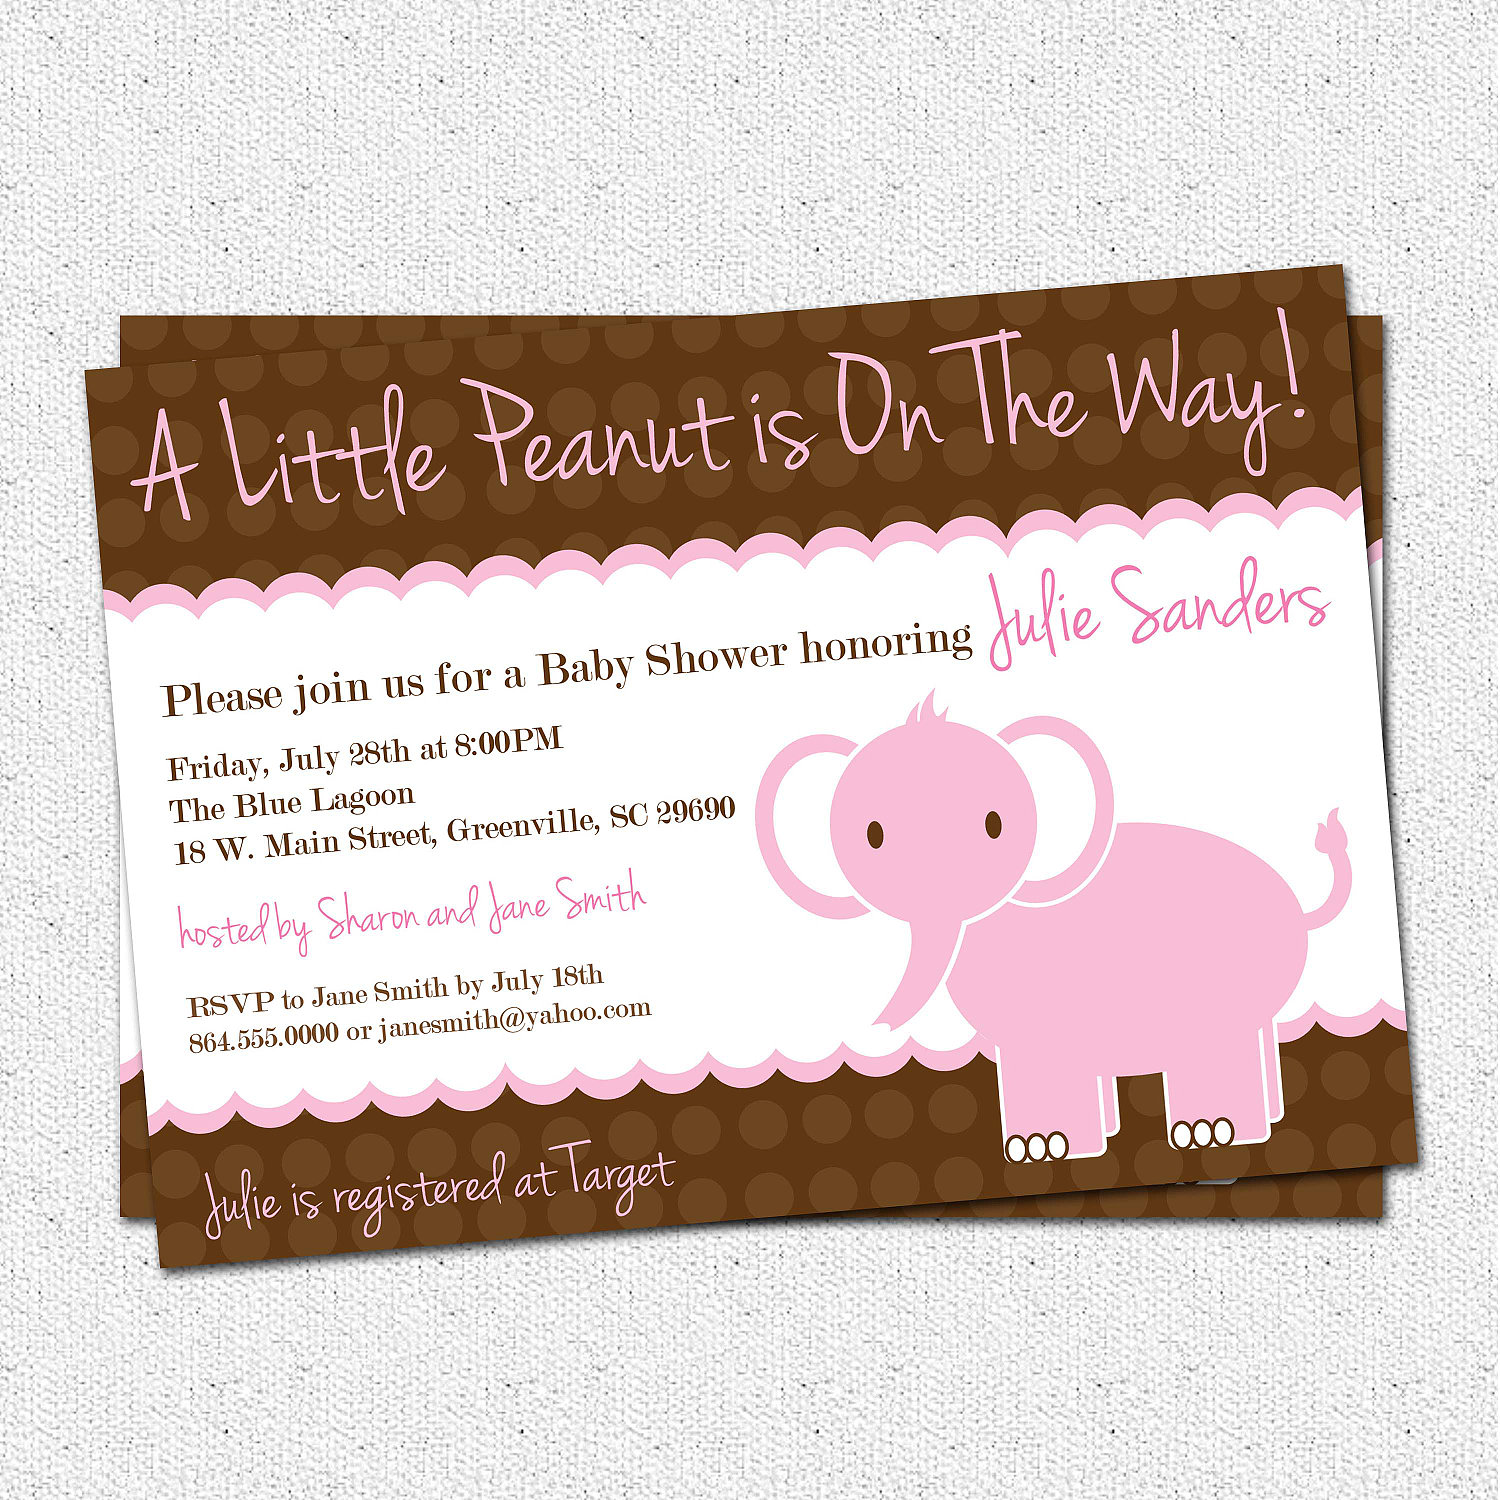 Baby shower invitations girl elephant little peanut pink and baby shower invitations girl elephant little peanut pink and brown personalized filmwisefo